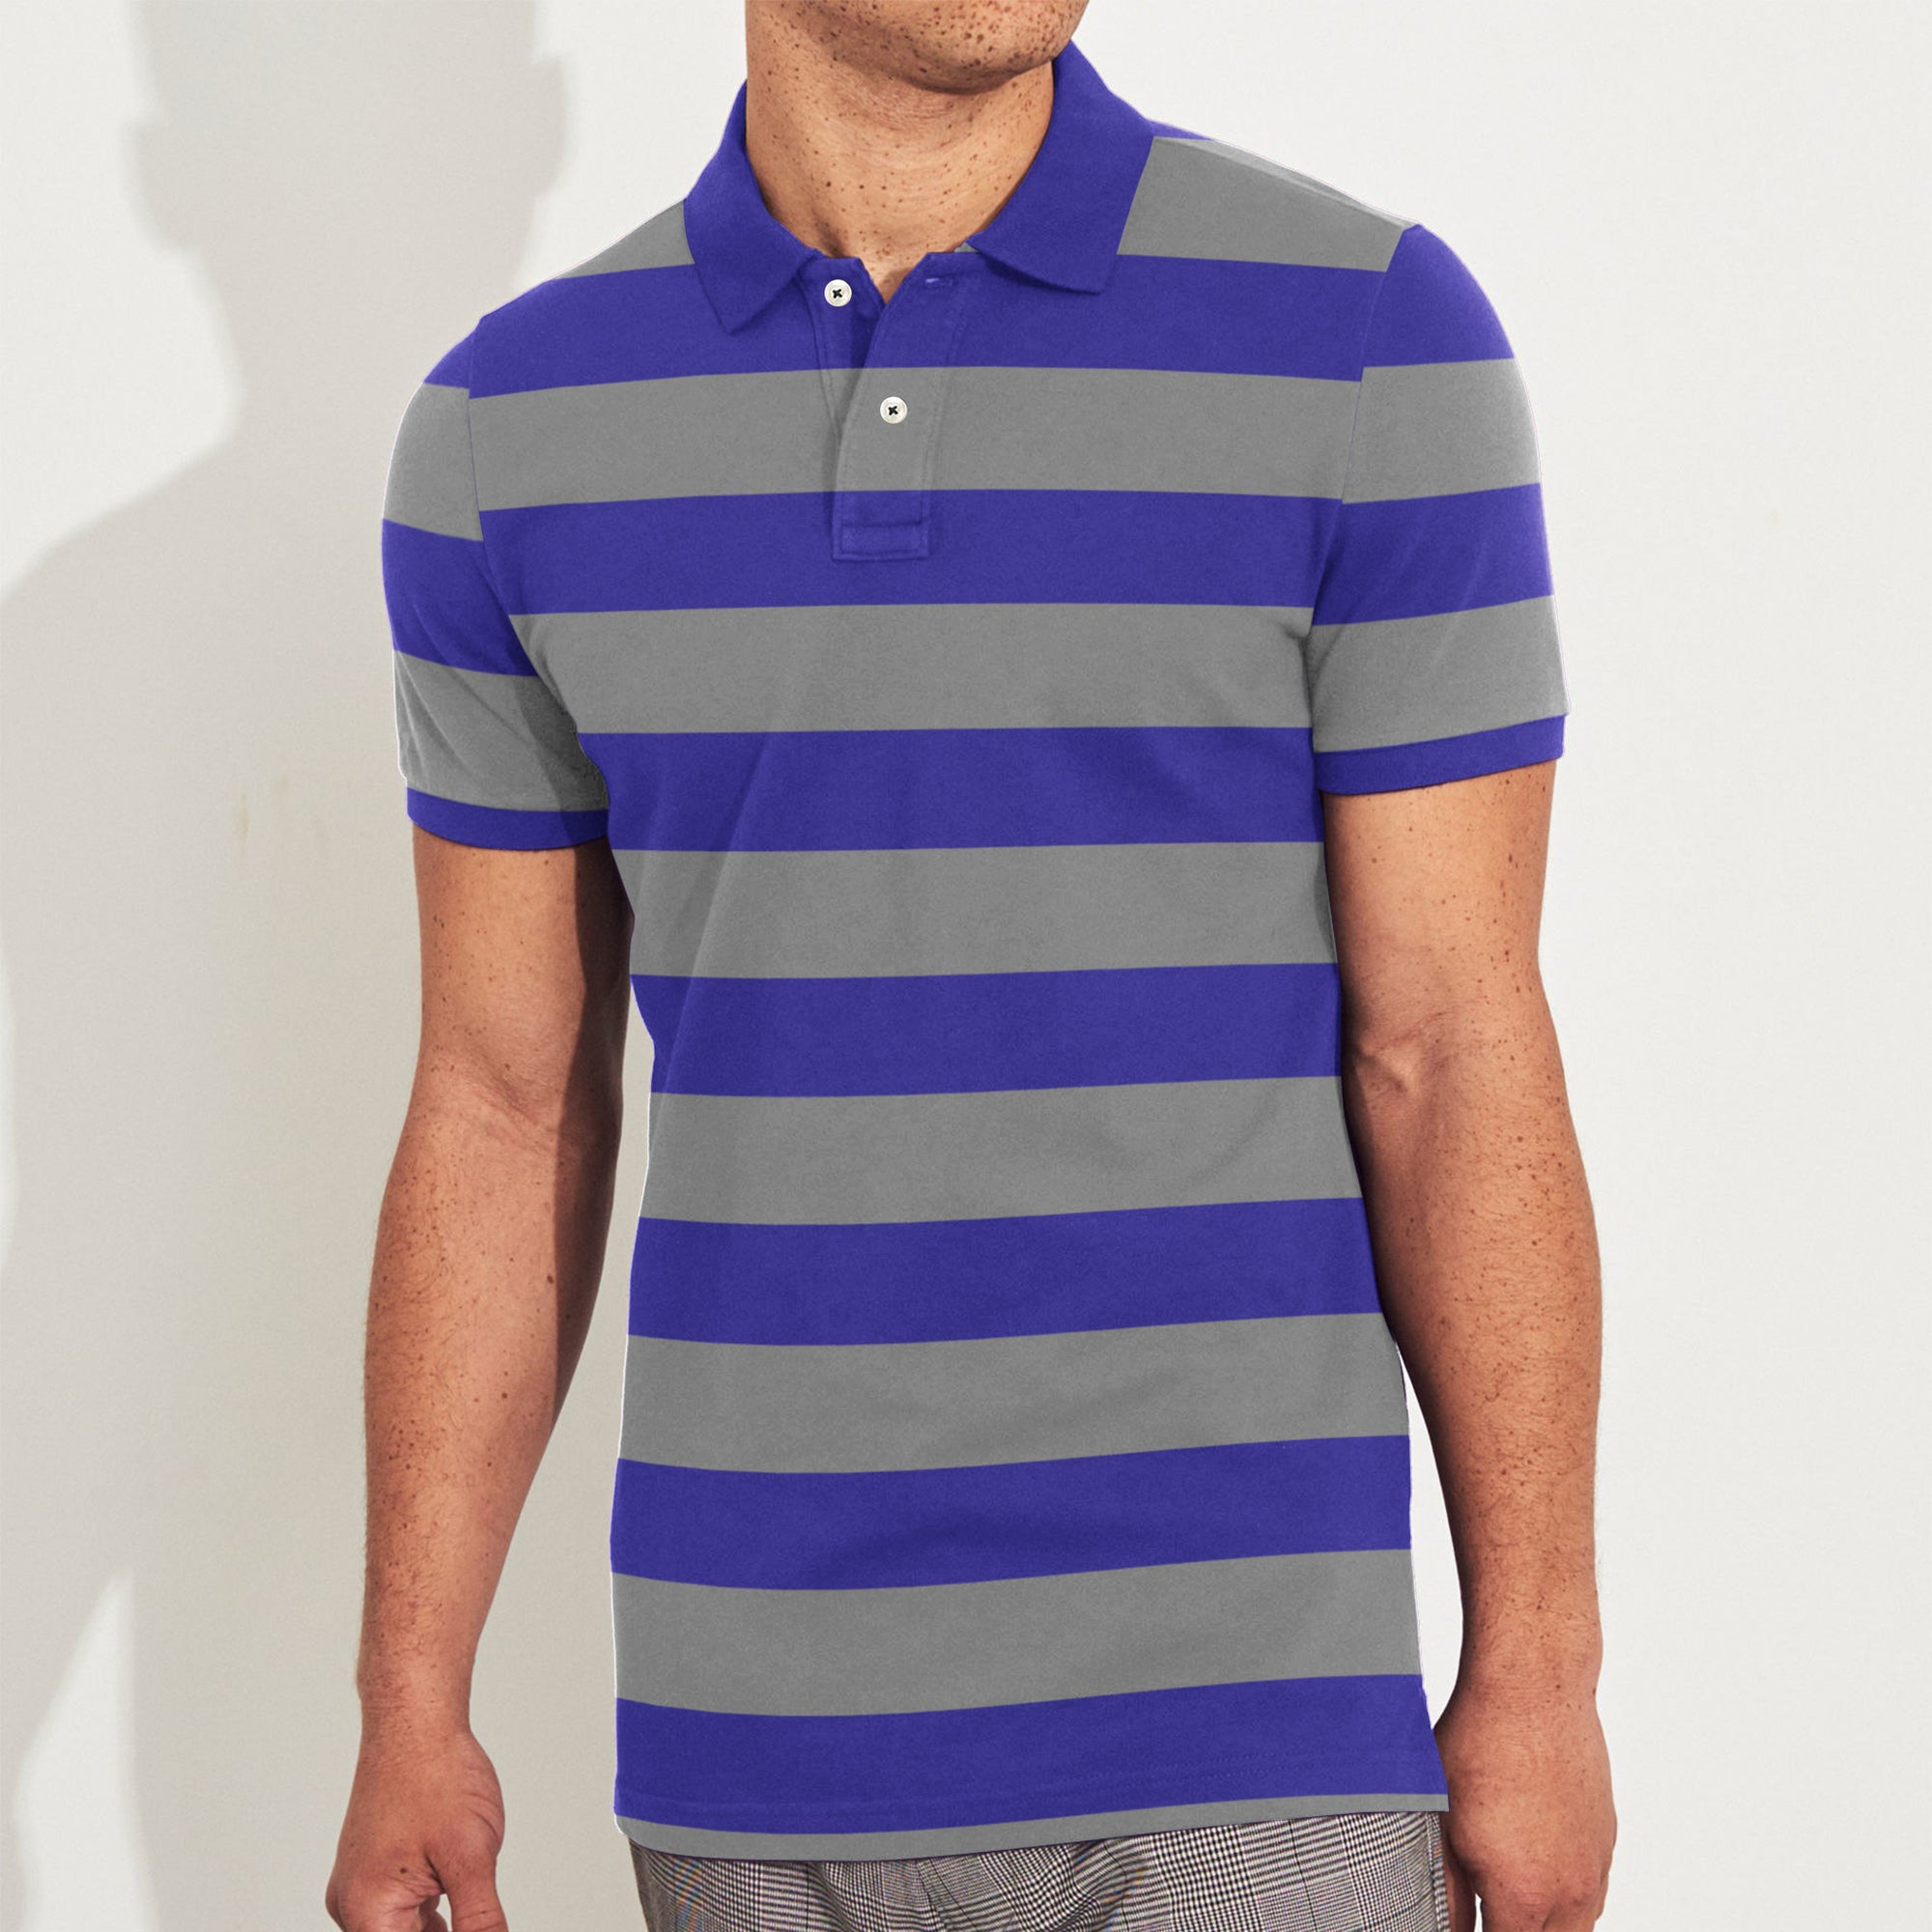 The Modern Short Sleeve P.Q Polo Shirt For Men-Purple & Grey Stripe-BE8609